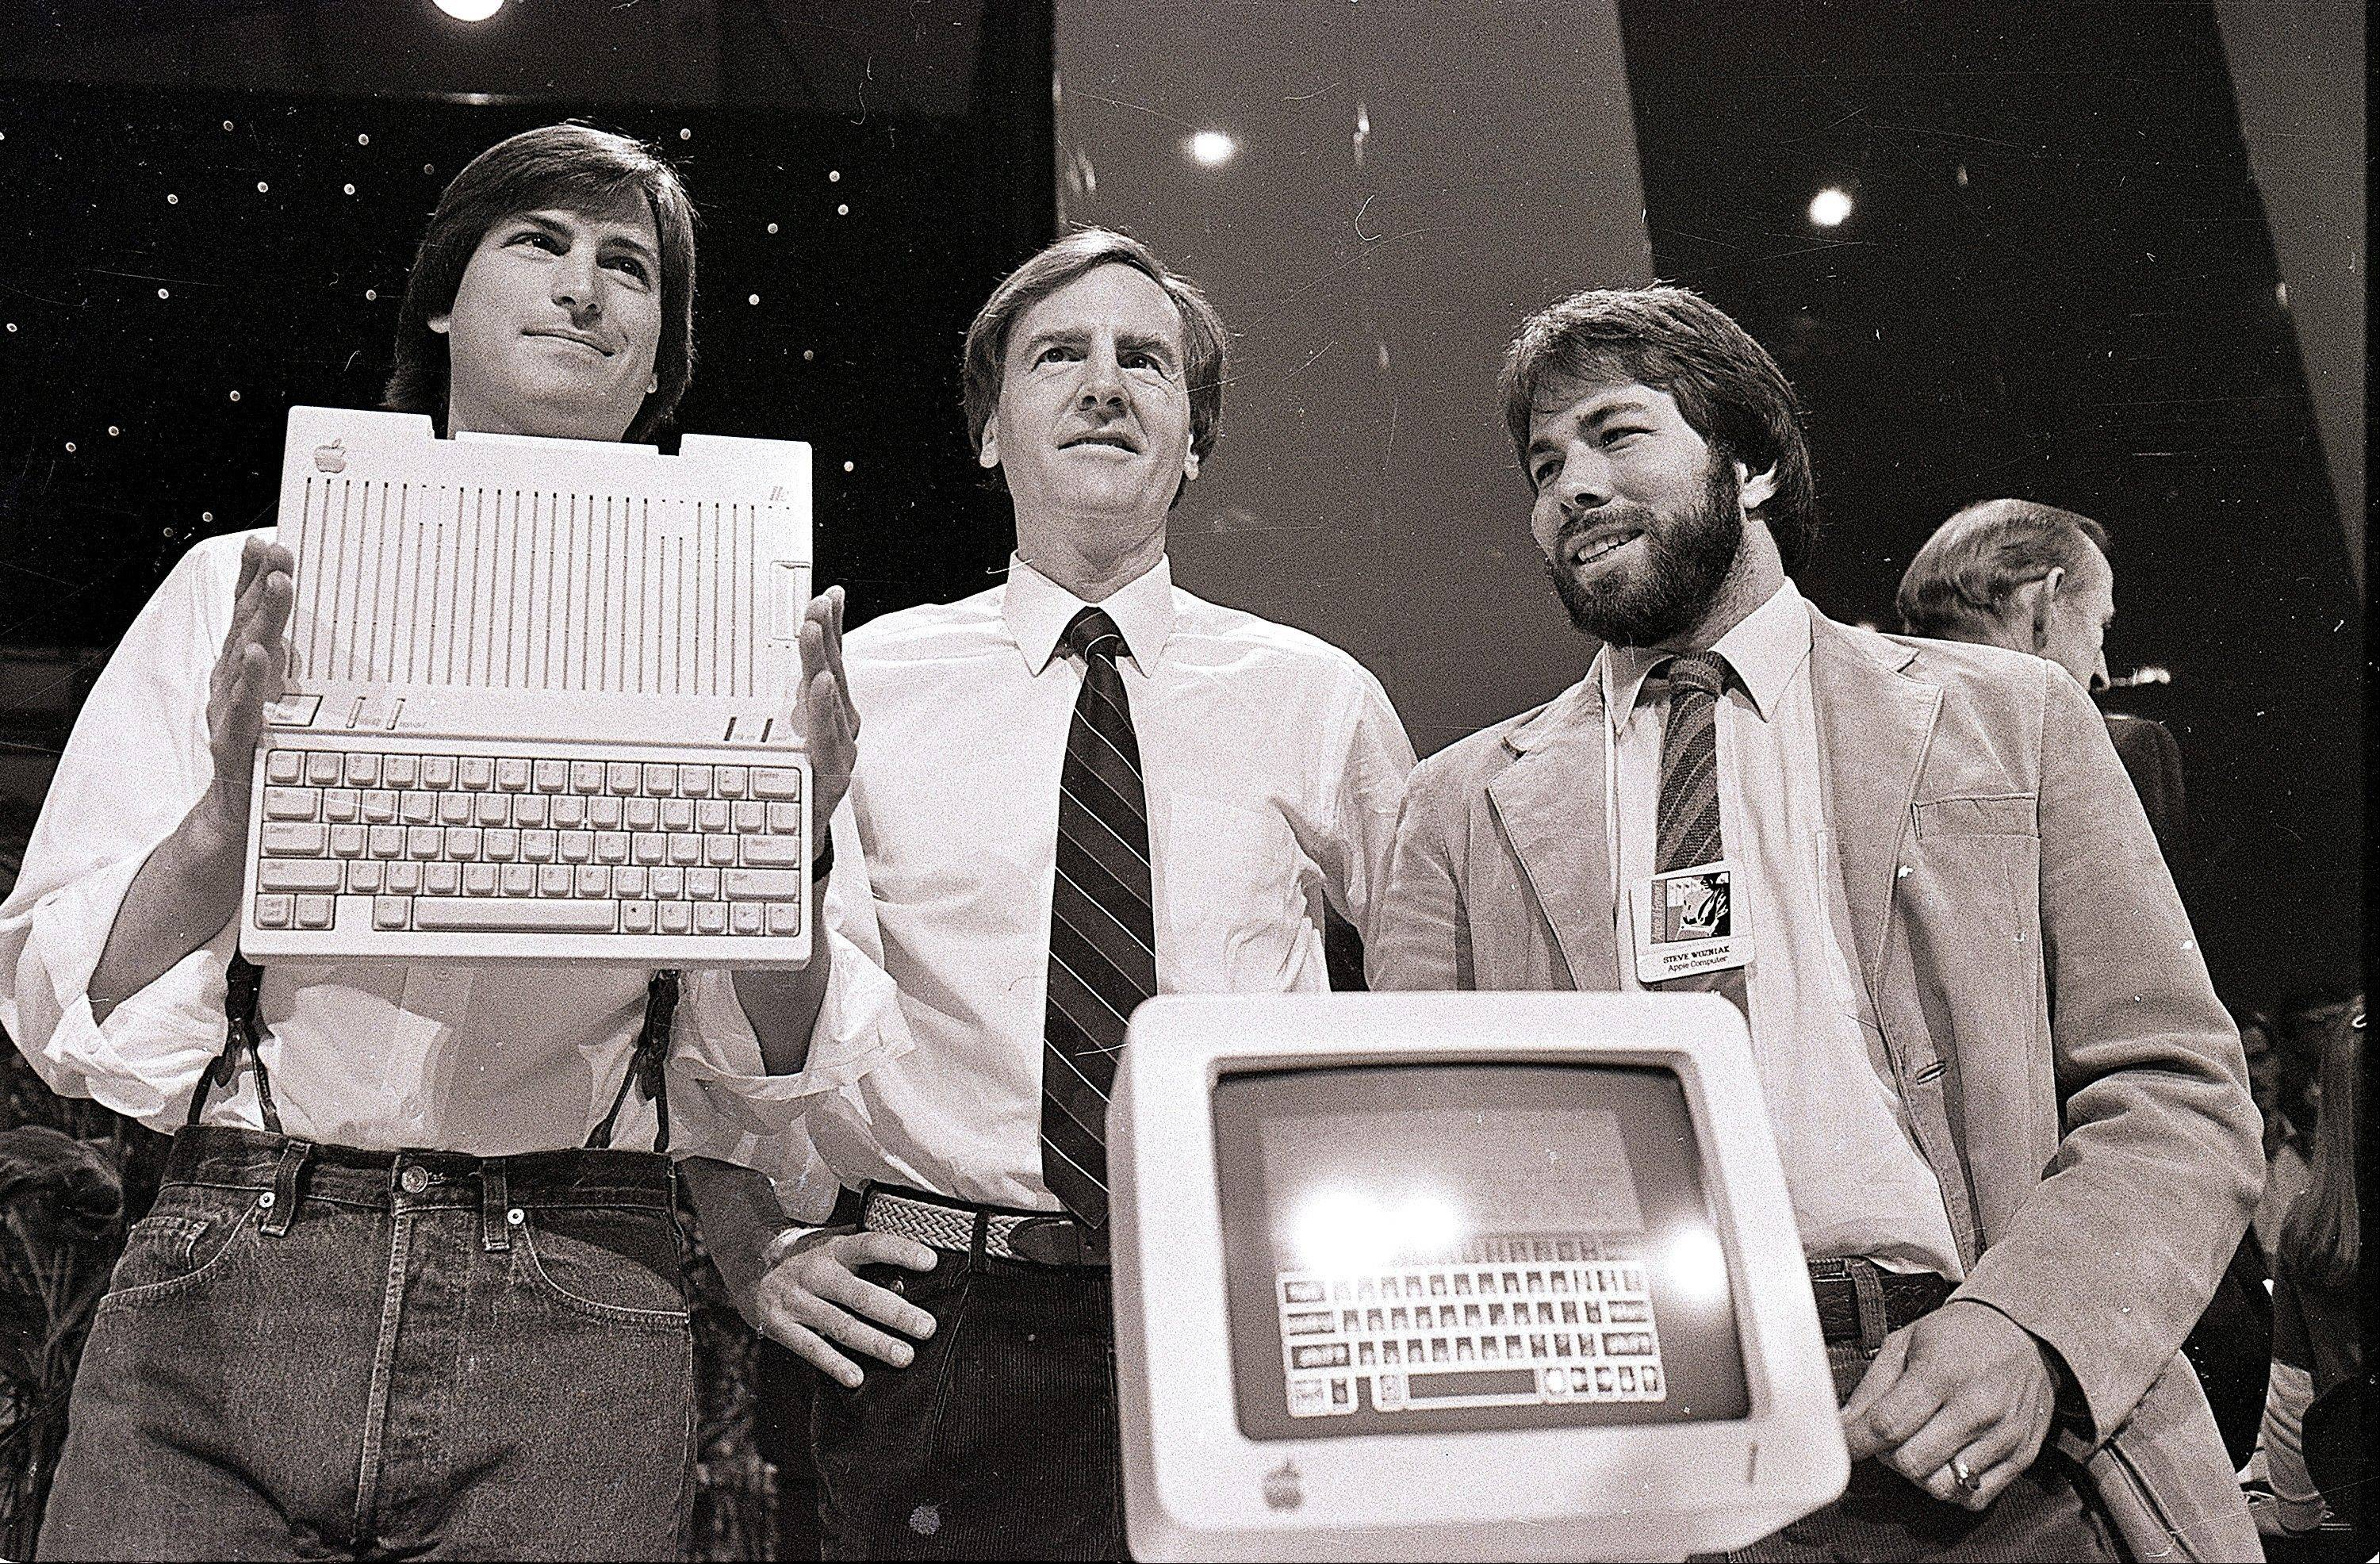 In this April 24, 1984, file photo, Steve Jobs, left, chairman of Apple Computers, John Sculley, center, then president and CEO, and Steve Wozniak, co-founder of Apple, unveil the new Apple IIc computer in San Francisco.